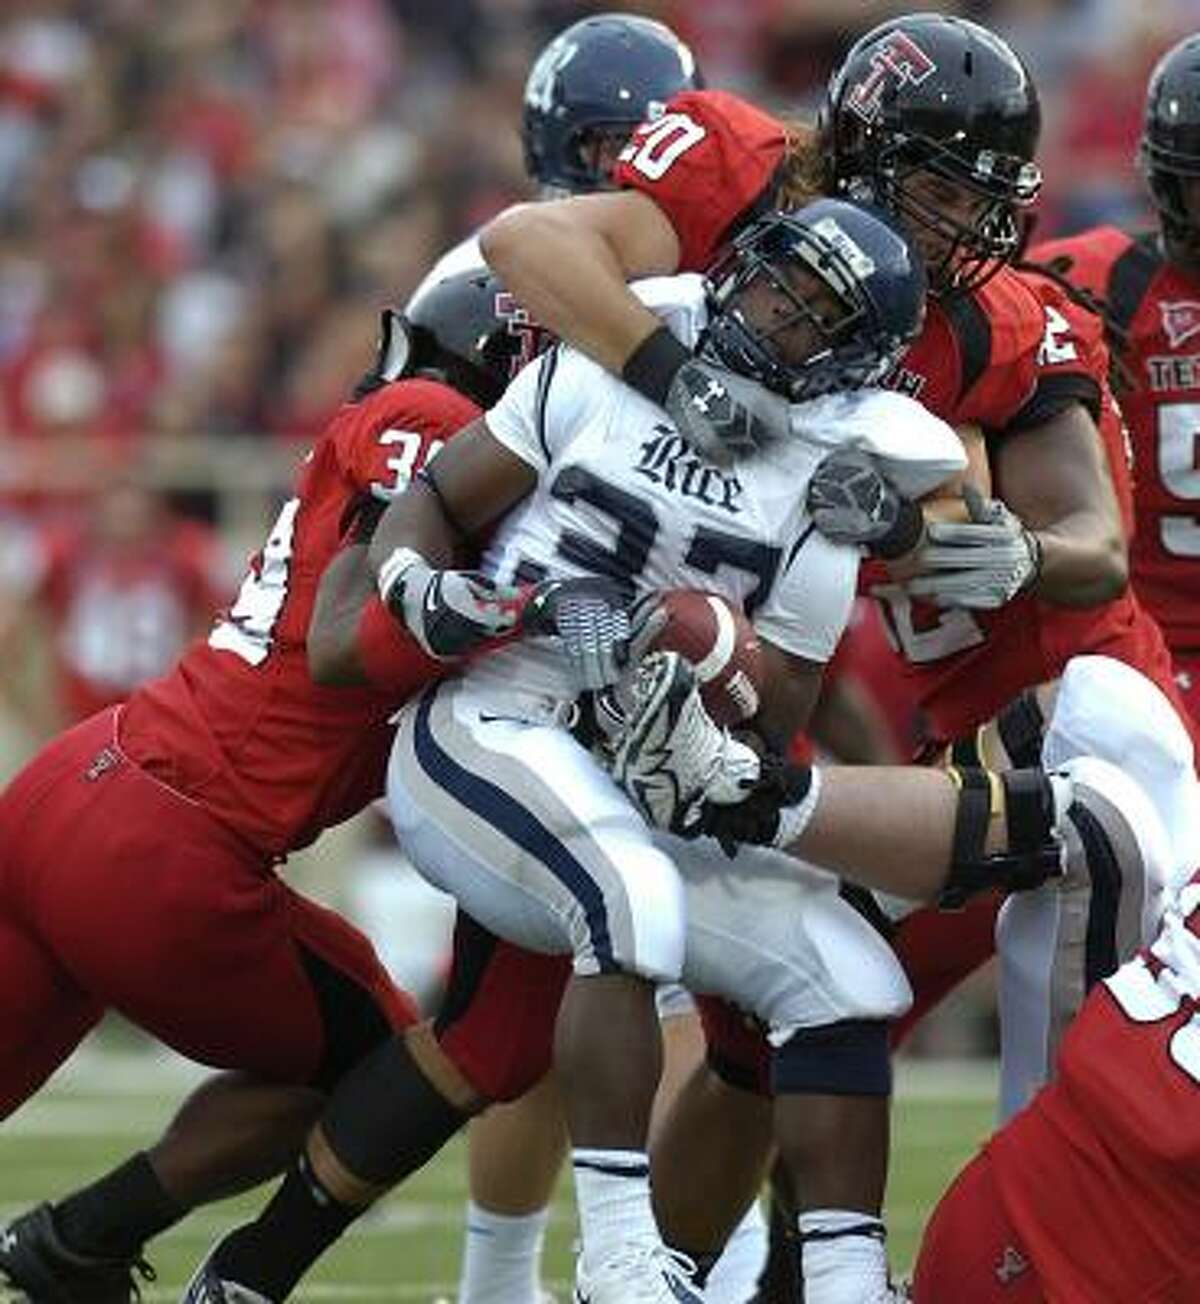 Texas Tech's Bront Bird (20) and Marlon Williams (39) wrap up Rice's Tyler Smith during Saturday night's game in Lubbock.